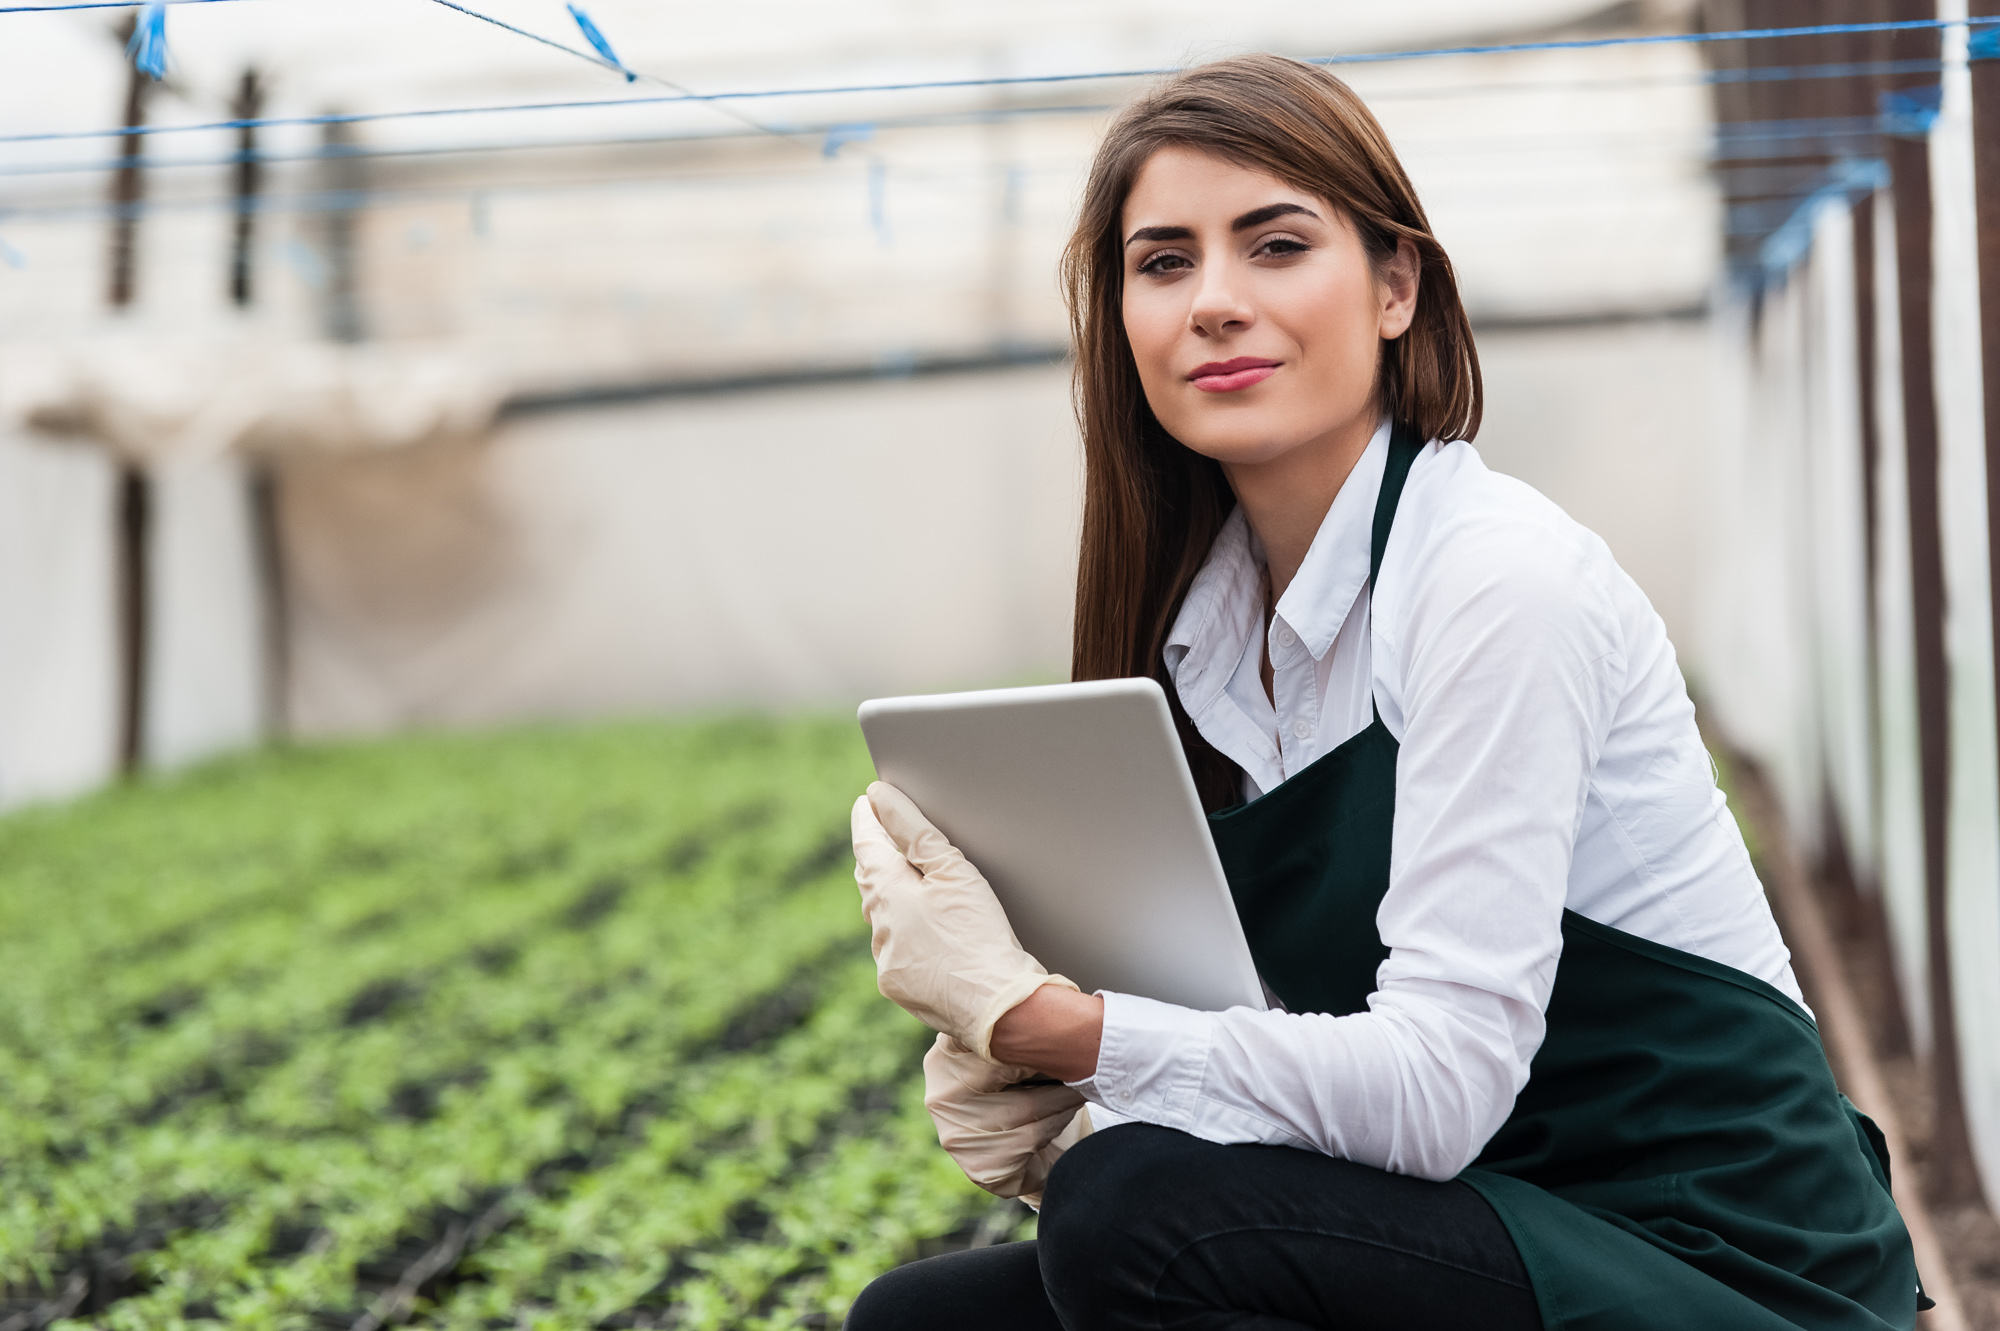 Female researcher in an indoor growing facility kneeling in front of rows of crops